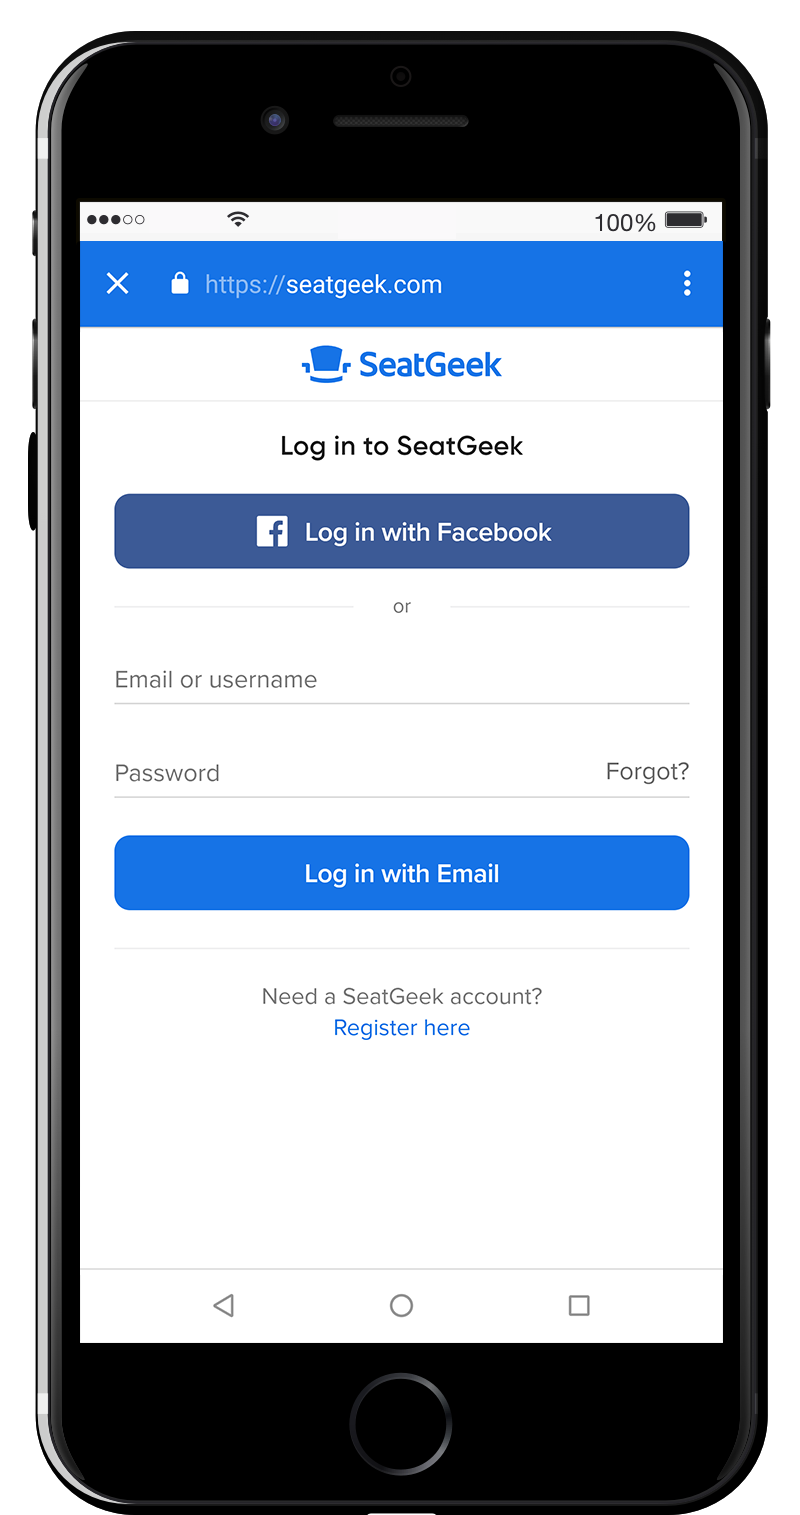 Log in through Facebook or use your email/username associated with your SeatGeek account.